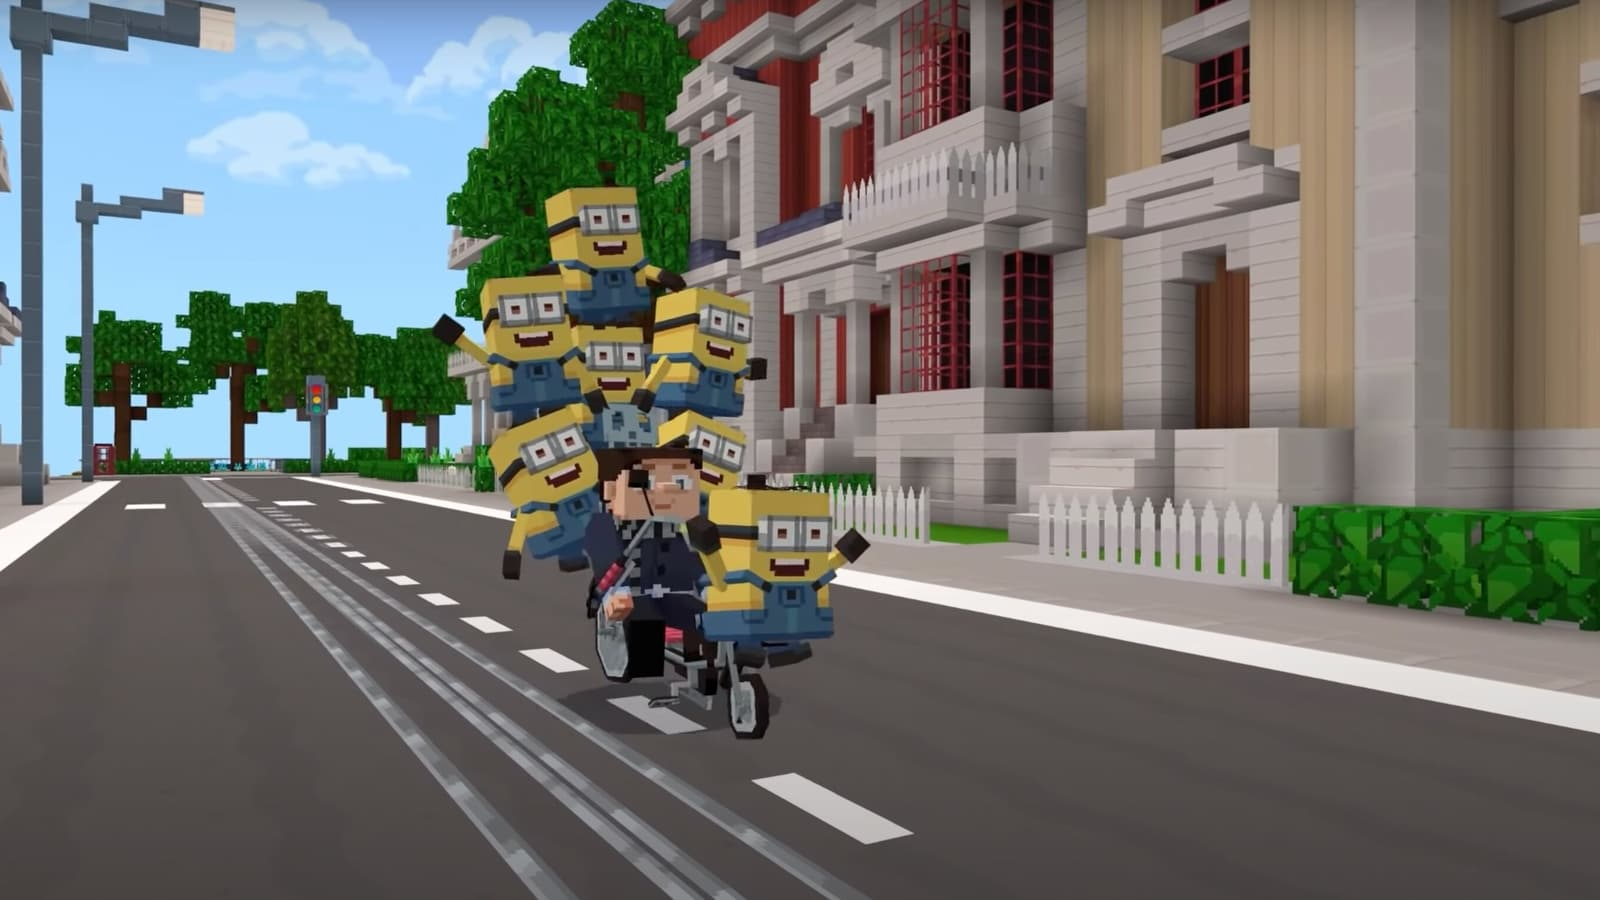 Minions are in Minecraft and we can't rest easy!